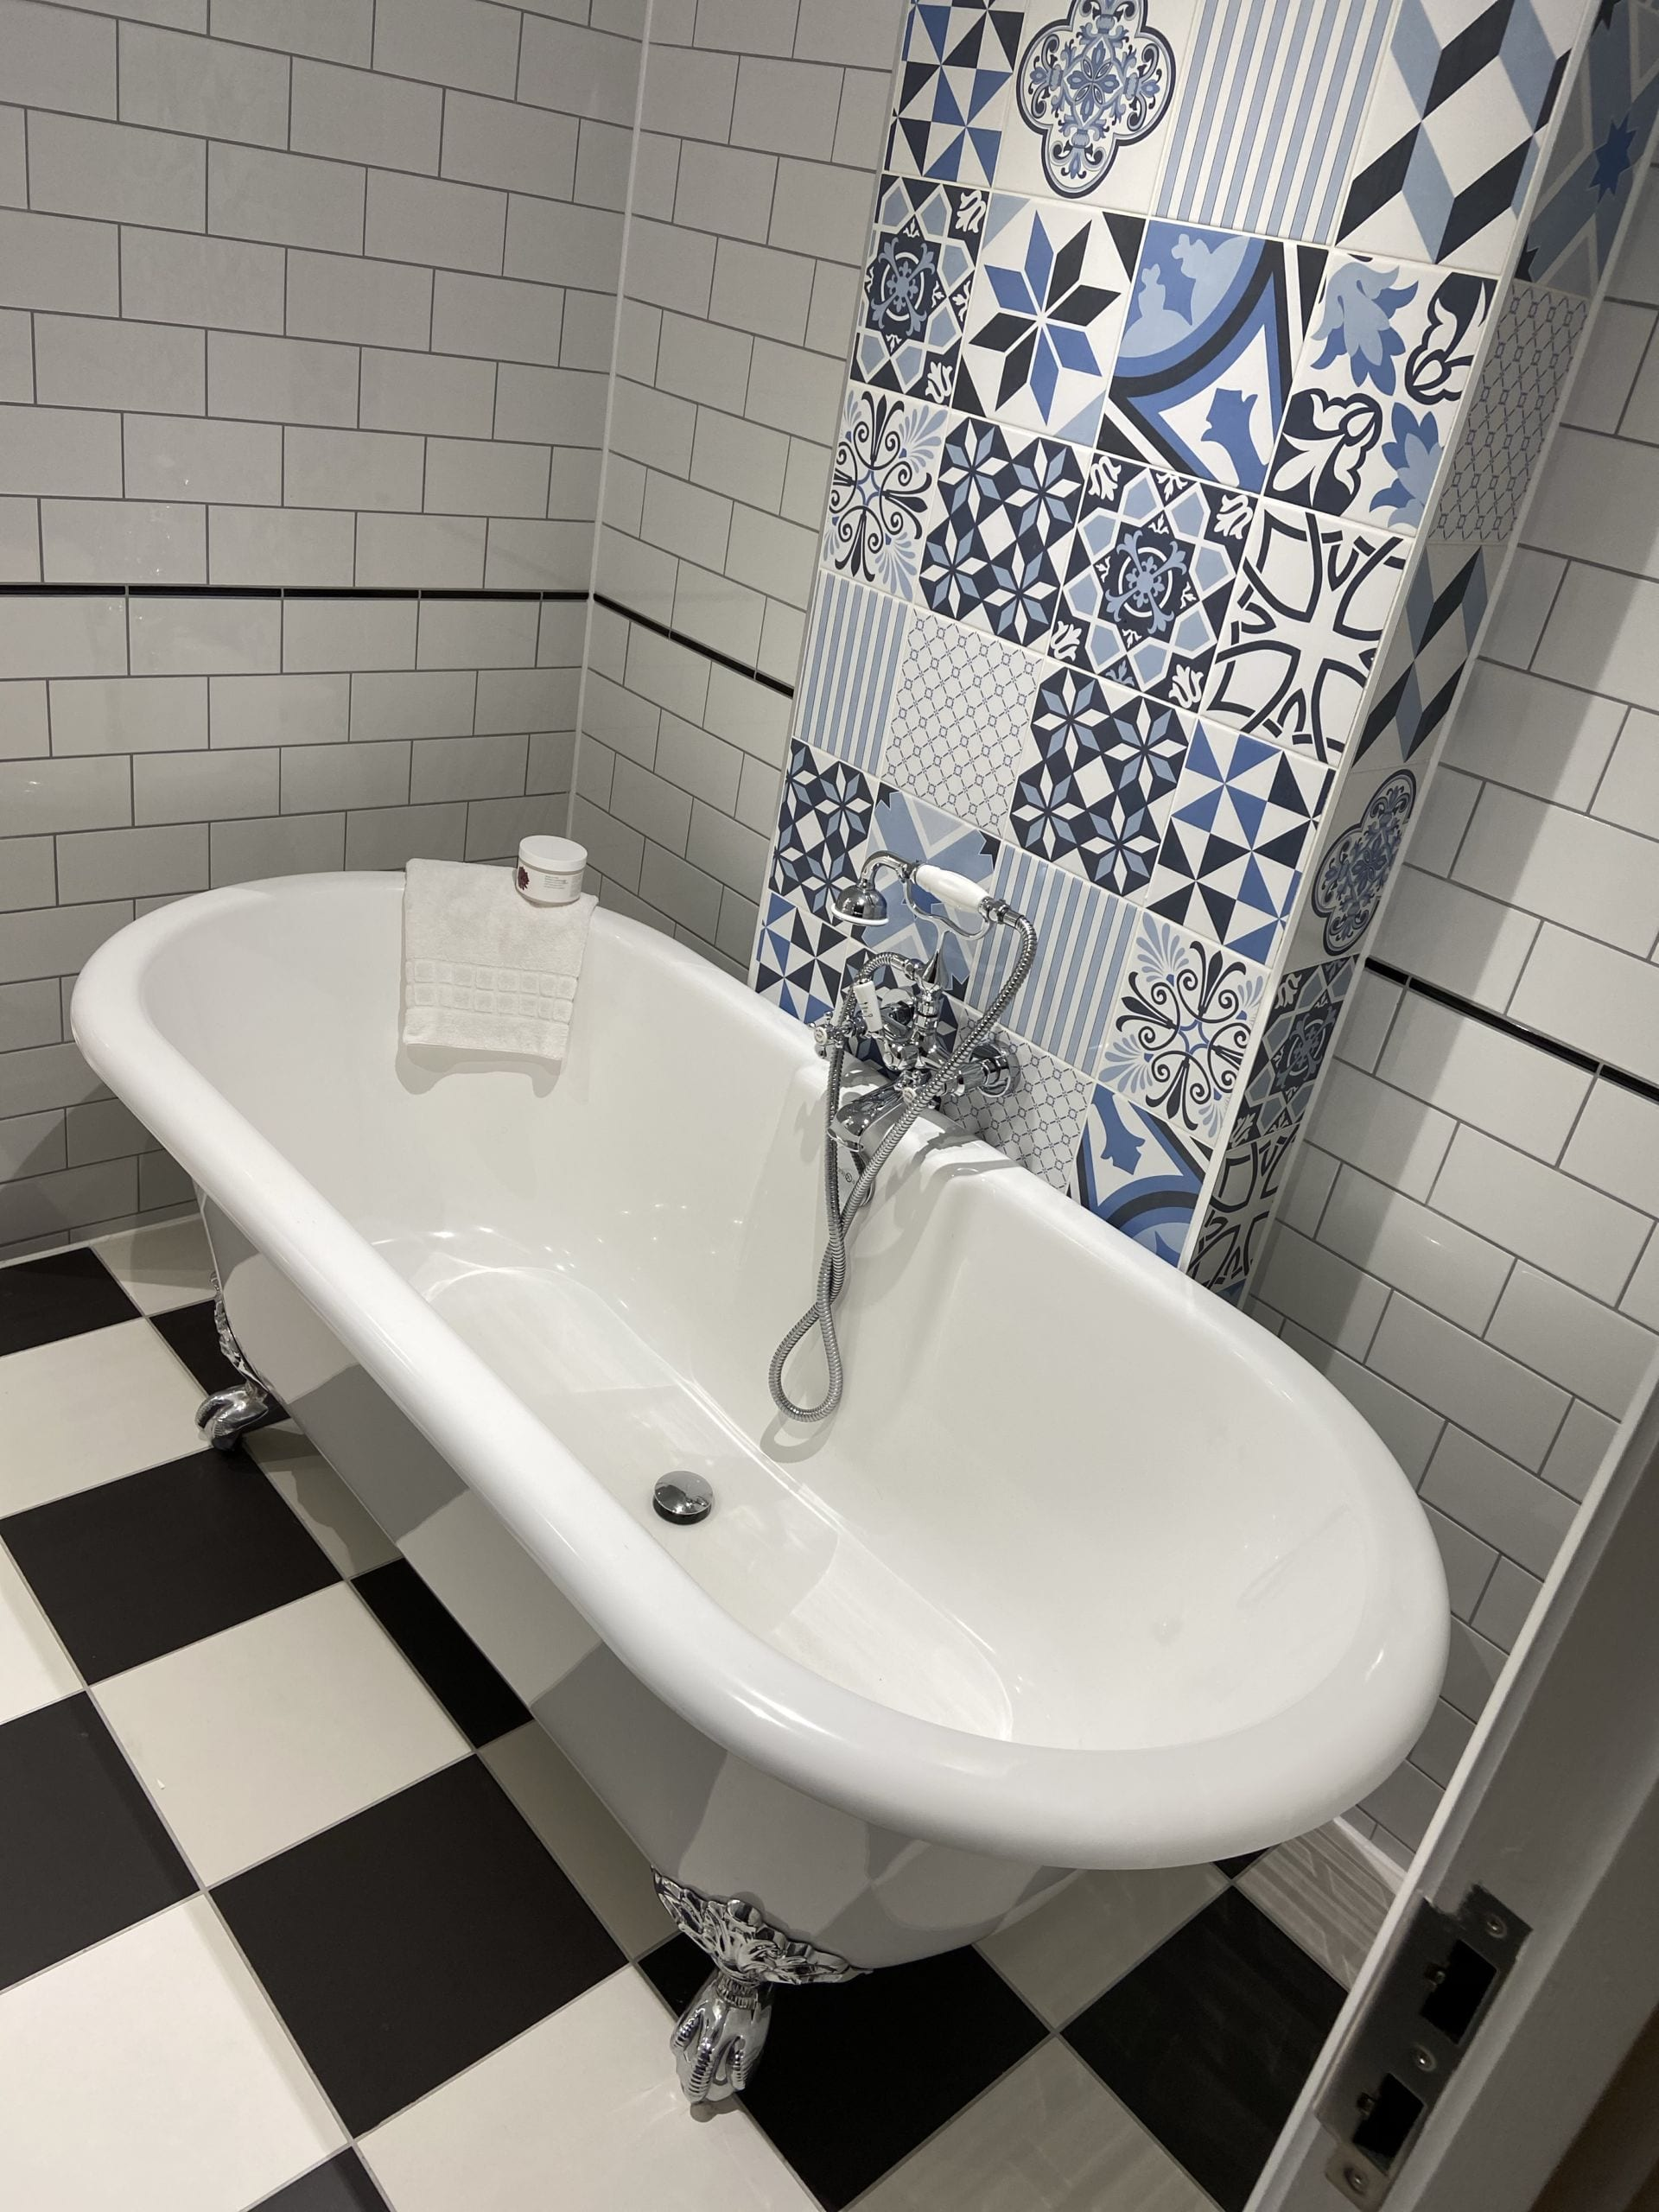 Bathroom with modern tiles